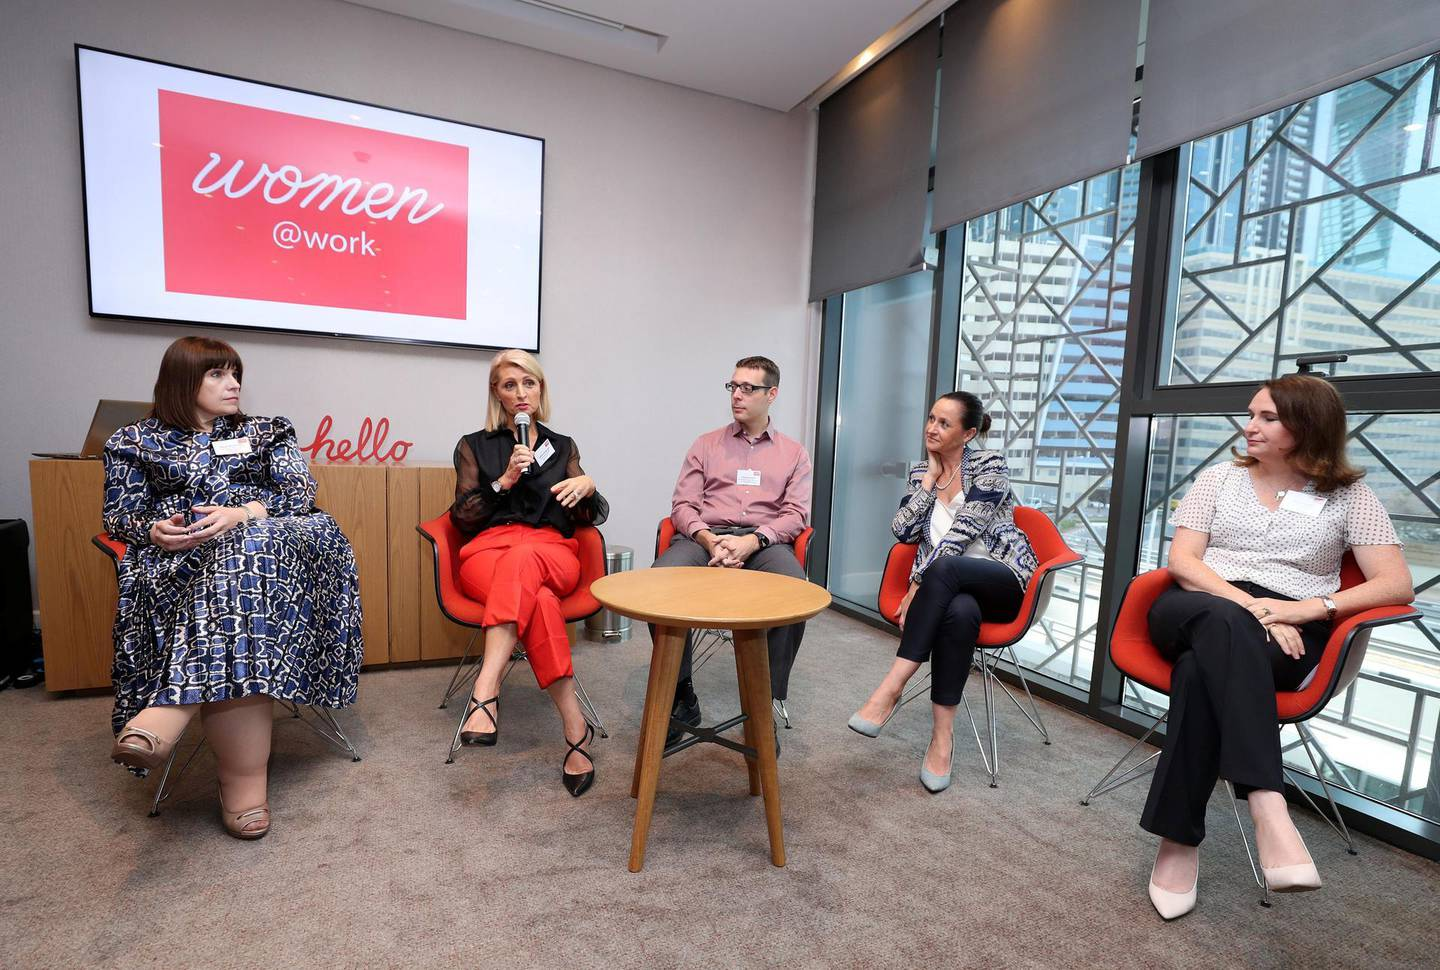 Dubai, United Arab Emirates - November 25, 2019: L-R Despo Michaelides, AXA Insurance, Debbie Kristansen, Novo Cinemas, Charles Haworth, Commercial director/ D&I leader GE renewable energy, Rachael Ellyard, Talent Leader MENA EY and Rebecca Jeffs, Serco Middle East. Panel discussion on women and the challenges they face at work. Monday, November 25th, 2017 at Rove Hotel, Abu Dhabi. Chris Whiteoak / The National